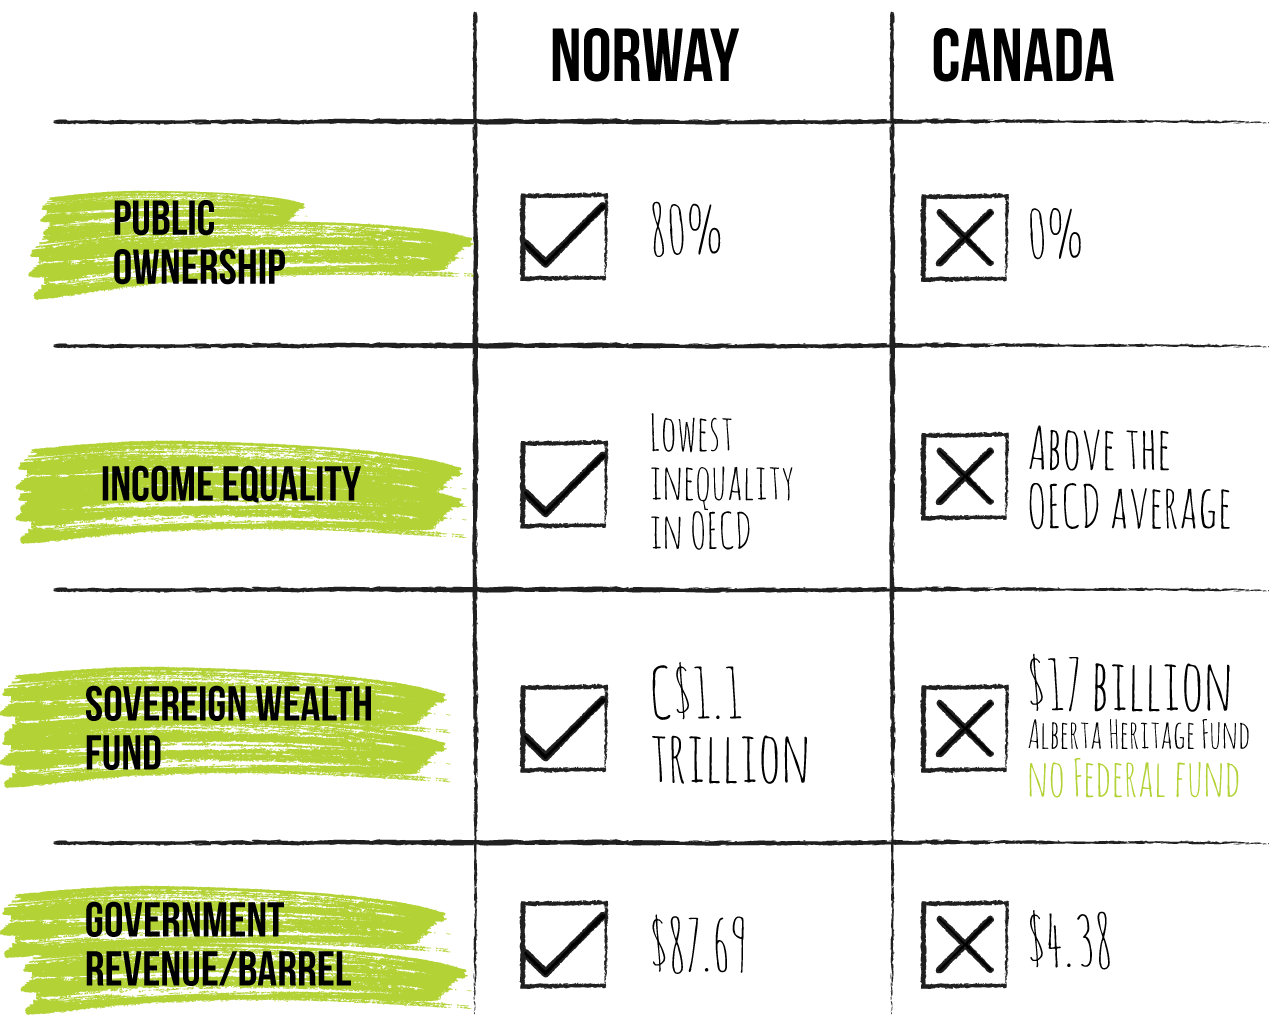 A chart comparing Norway and Canada's economic and fiscal management of petroleum